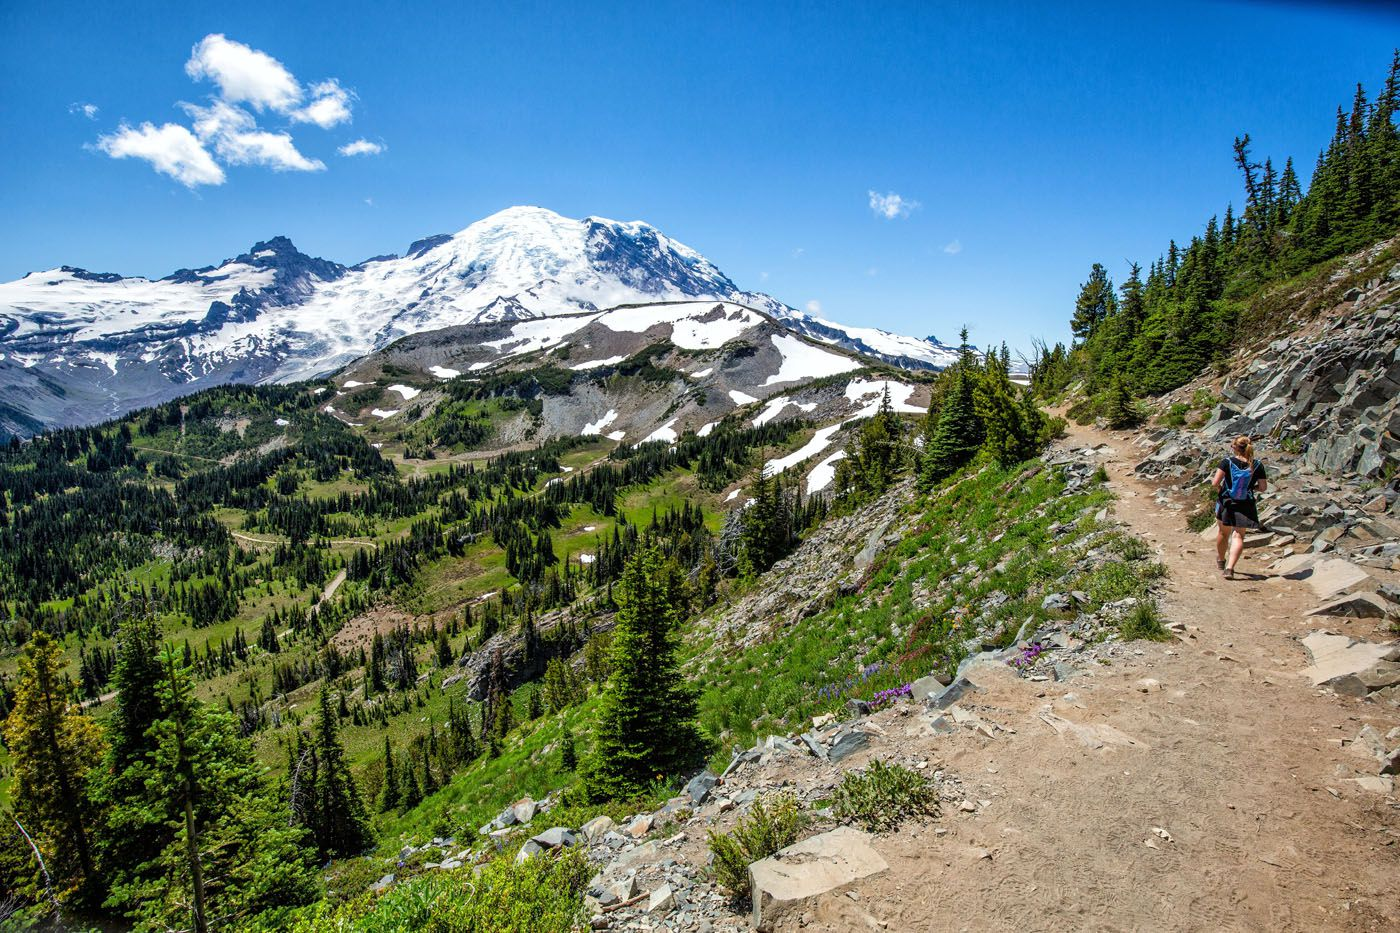 Mount Rainier Hike July